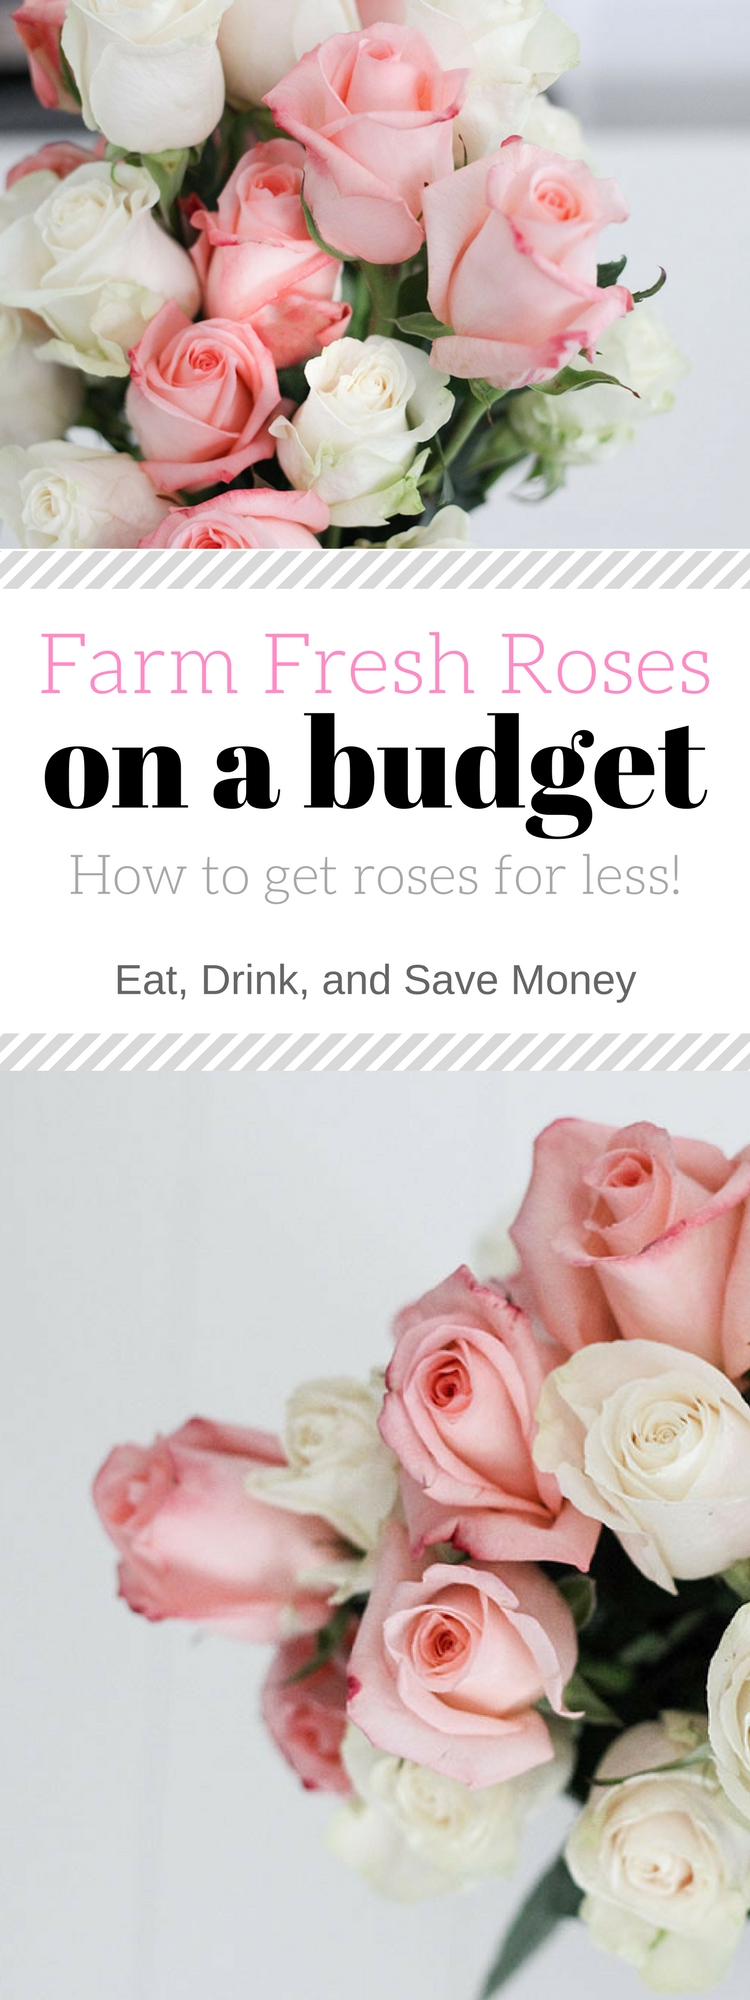 Get the best deal on flower delivery. How to get the best deal on roses delivered to your door. Farm fresh roses on a budget.